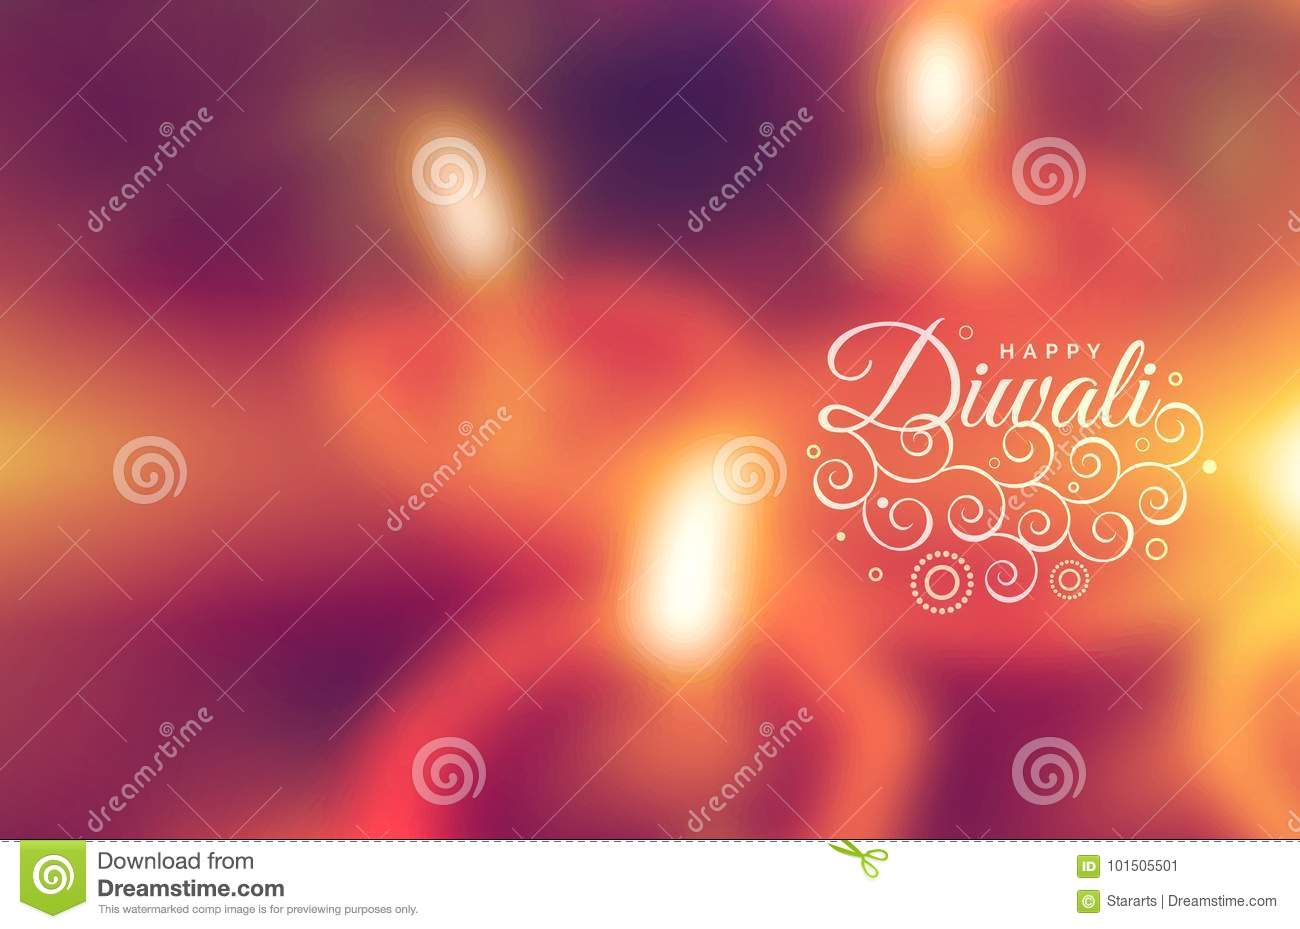 Beautiful Happy Diwali Greeting Wallpaper Stock Vector